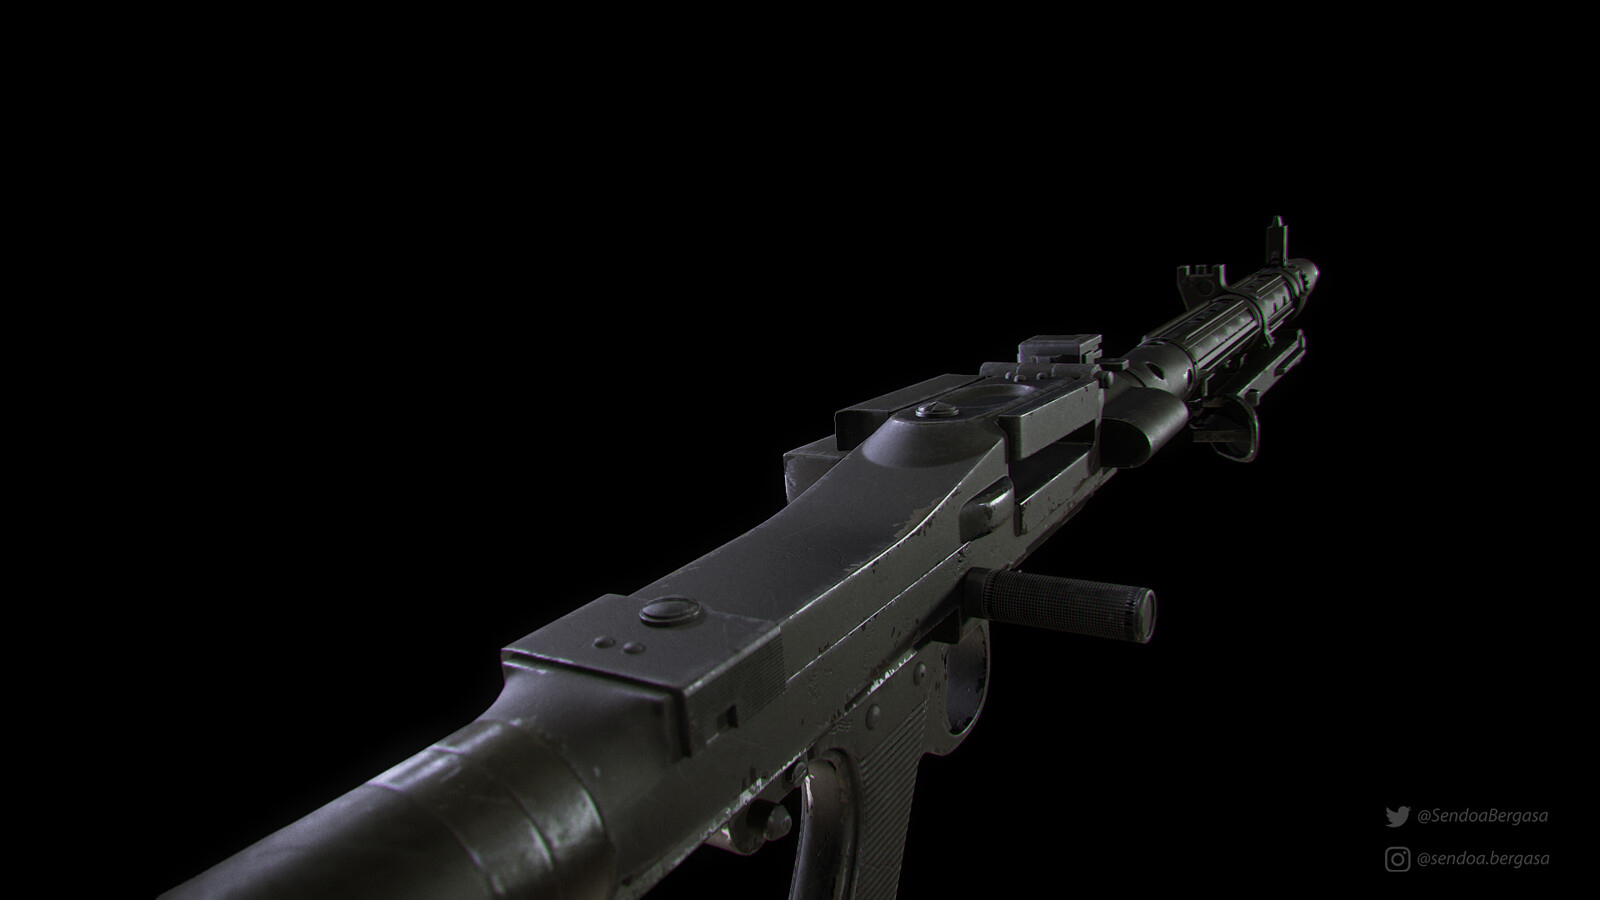 DLT-19 Heavy Blaster Rifle